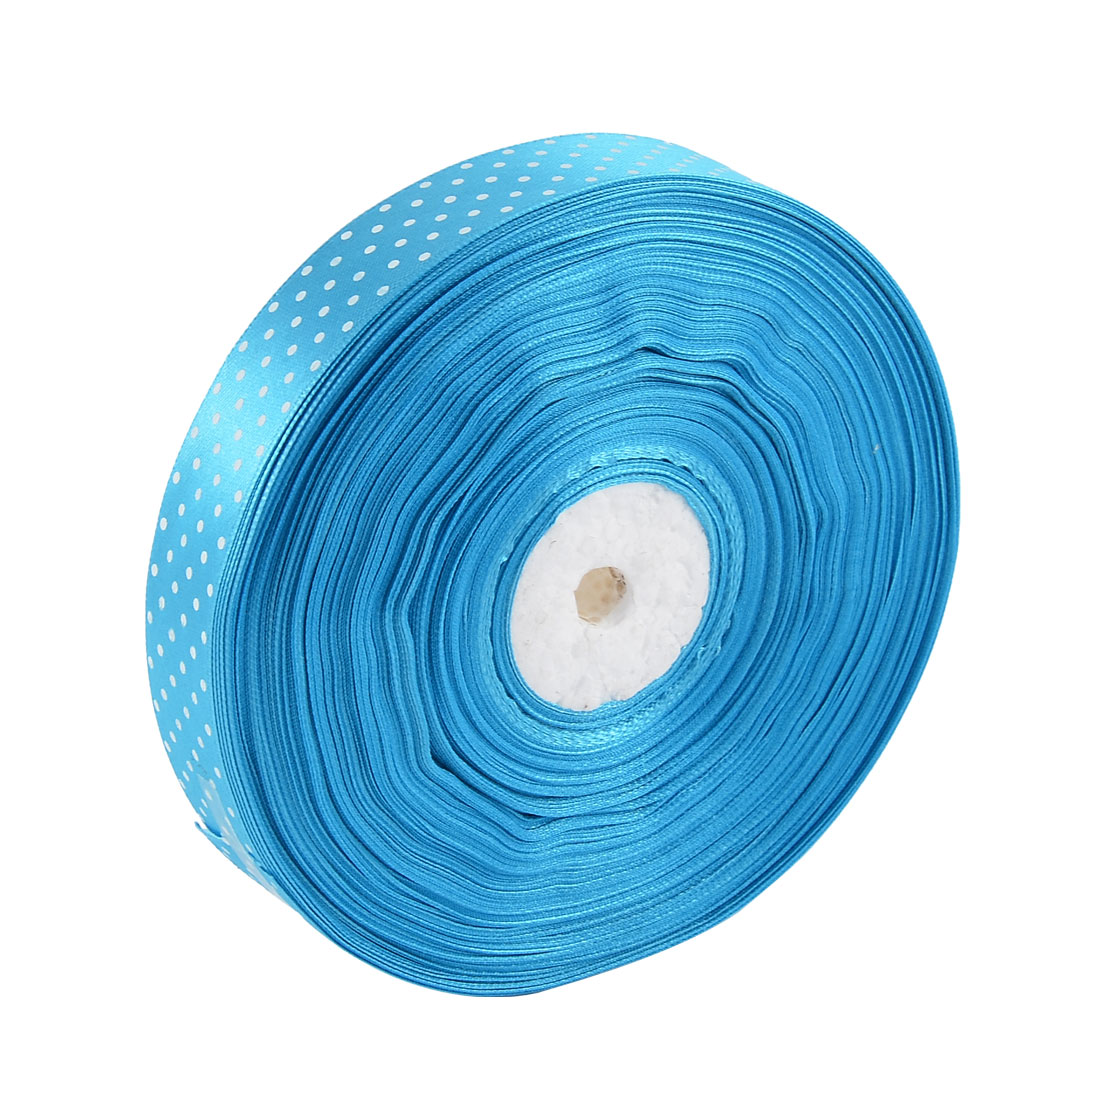 Polyester Satin Dot Printed Ribbon Roll DIY Gift Package Craft Blue 2.5cm Width